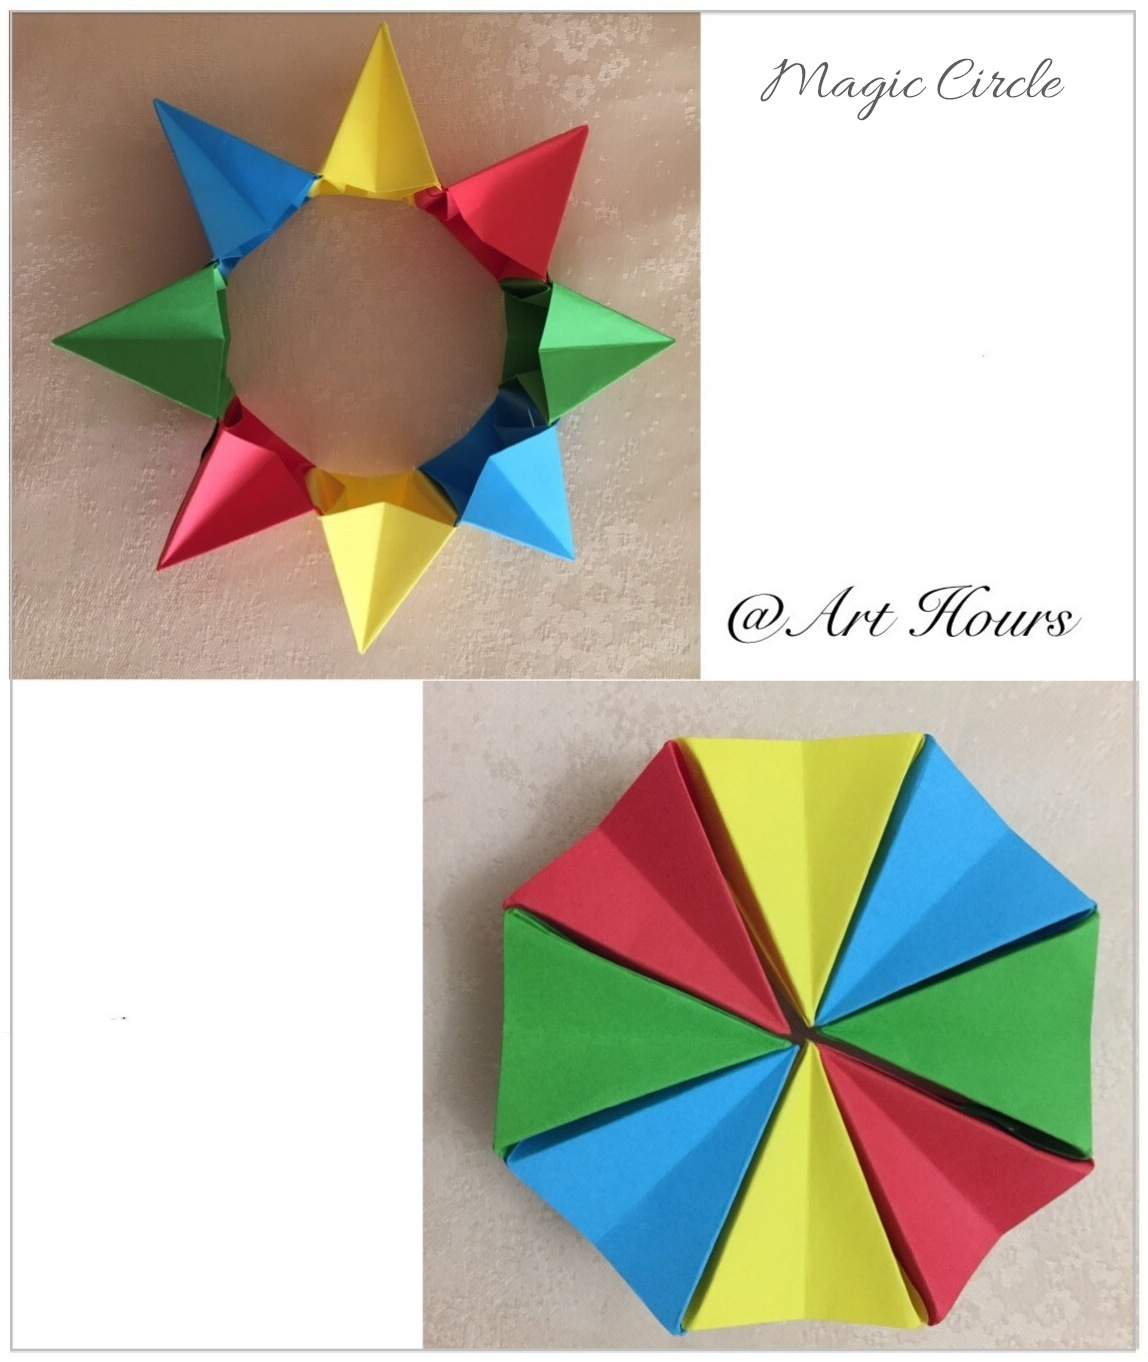 Origami Magic Circle Folded By Art Hours